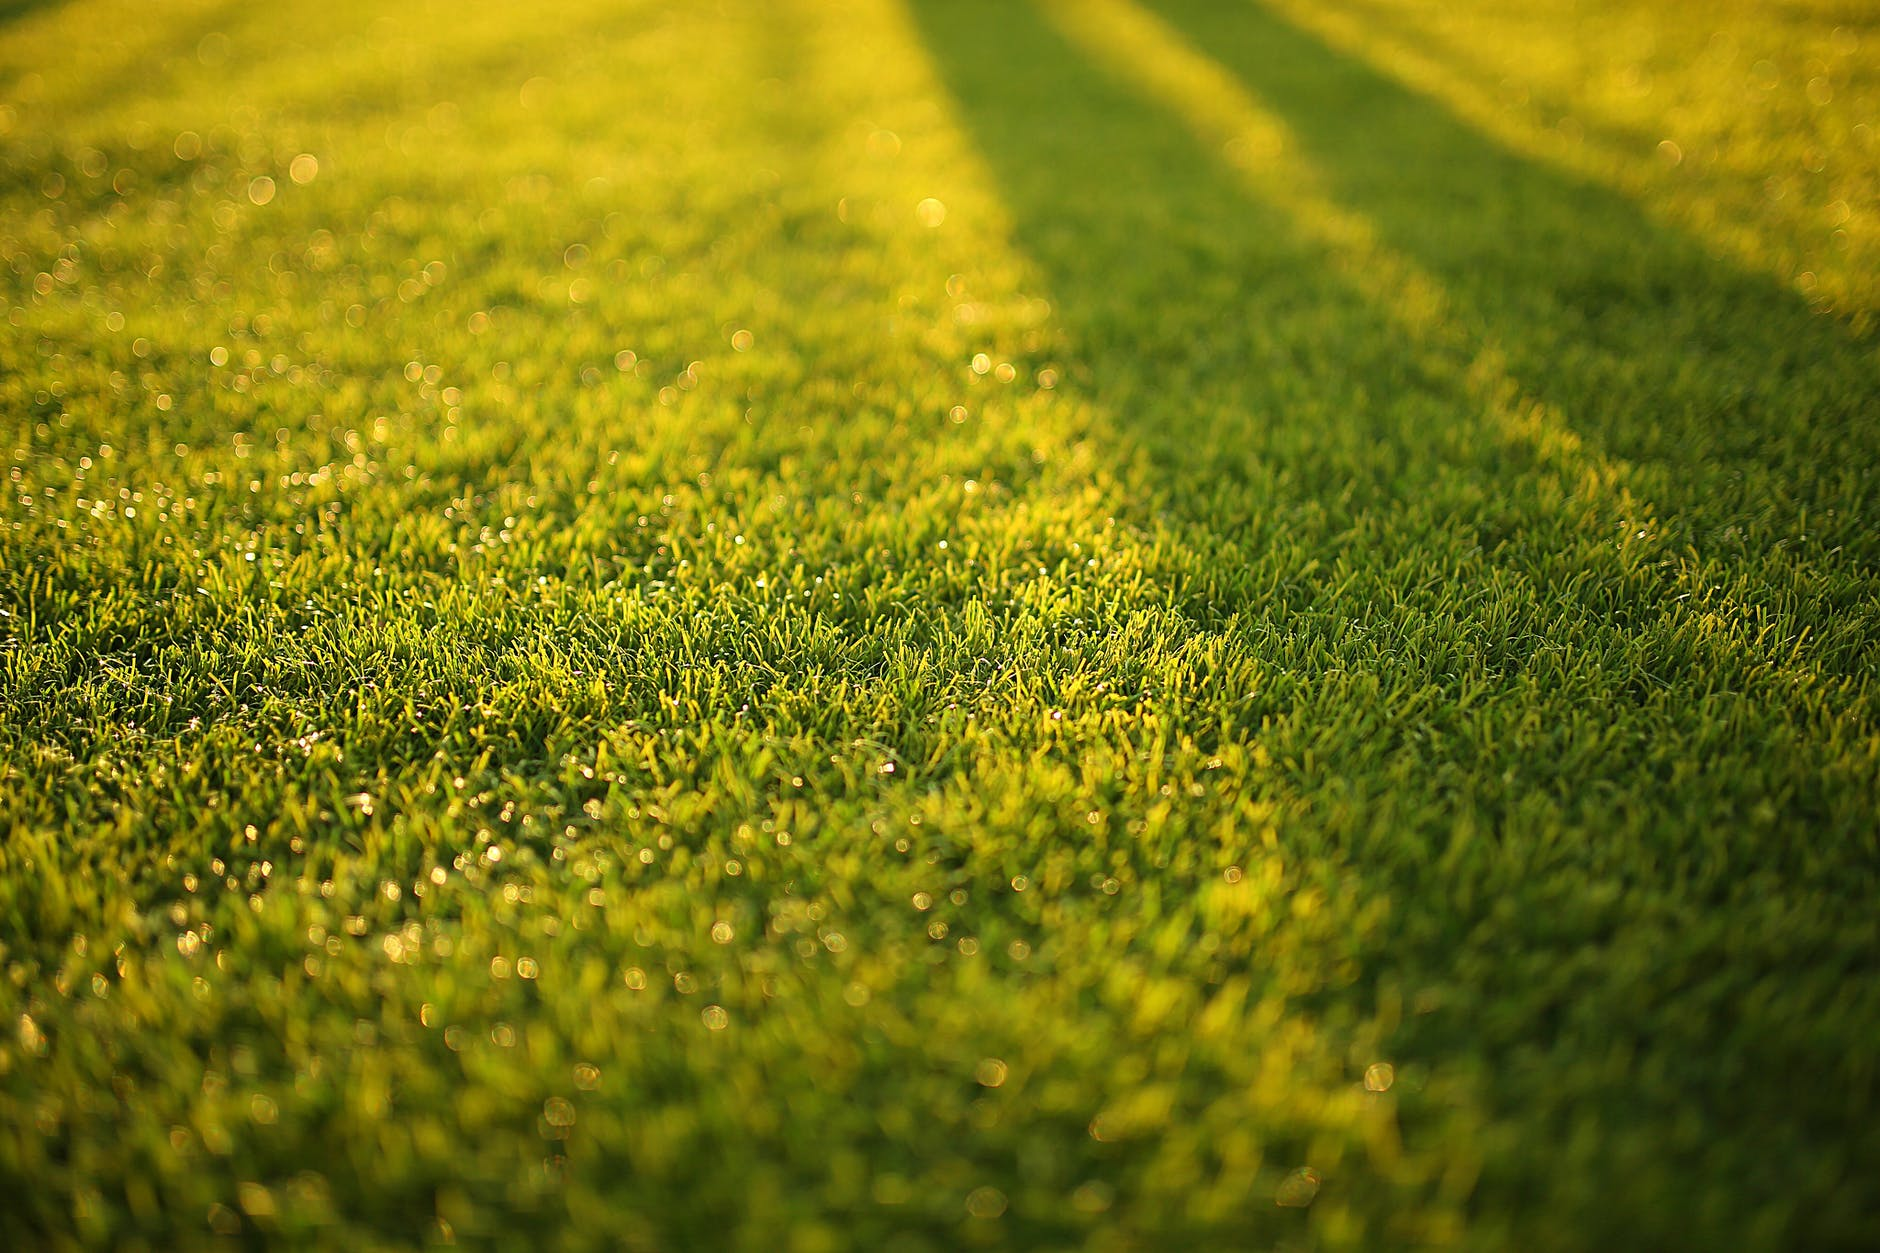 Lawn Mowers-lawn care & equipment